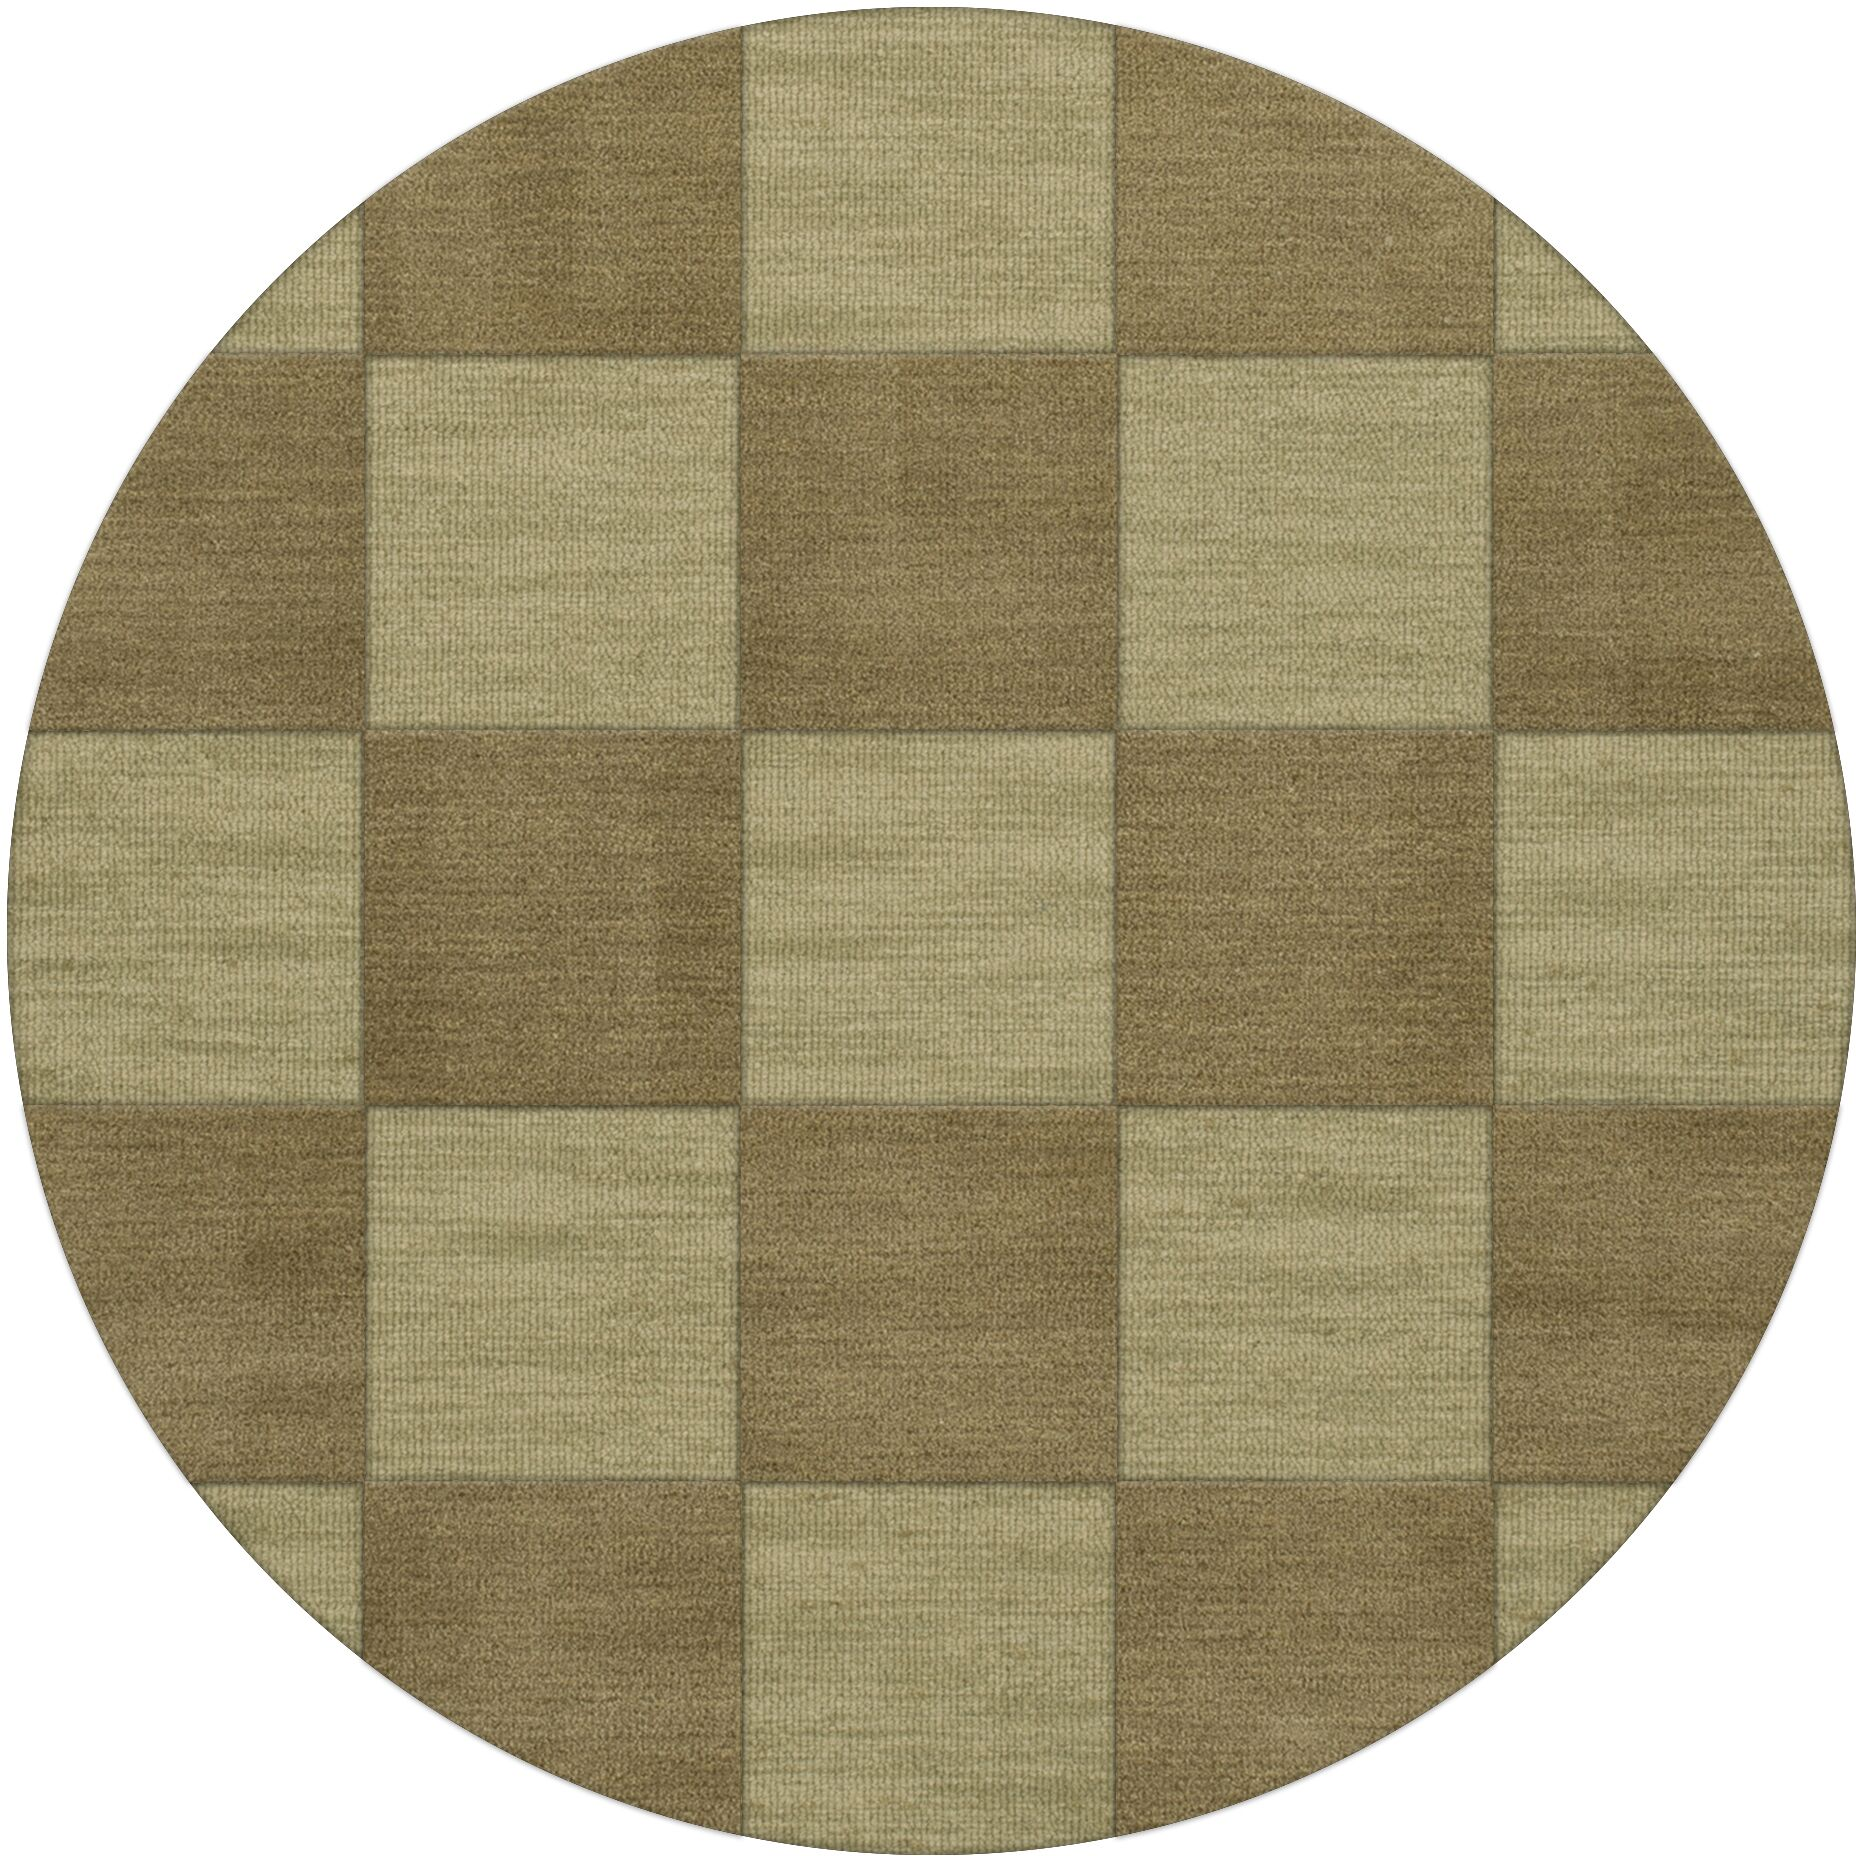 Dover Tufted Wool Marsh Area Rug Rug Size: Round 12'